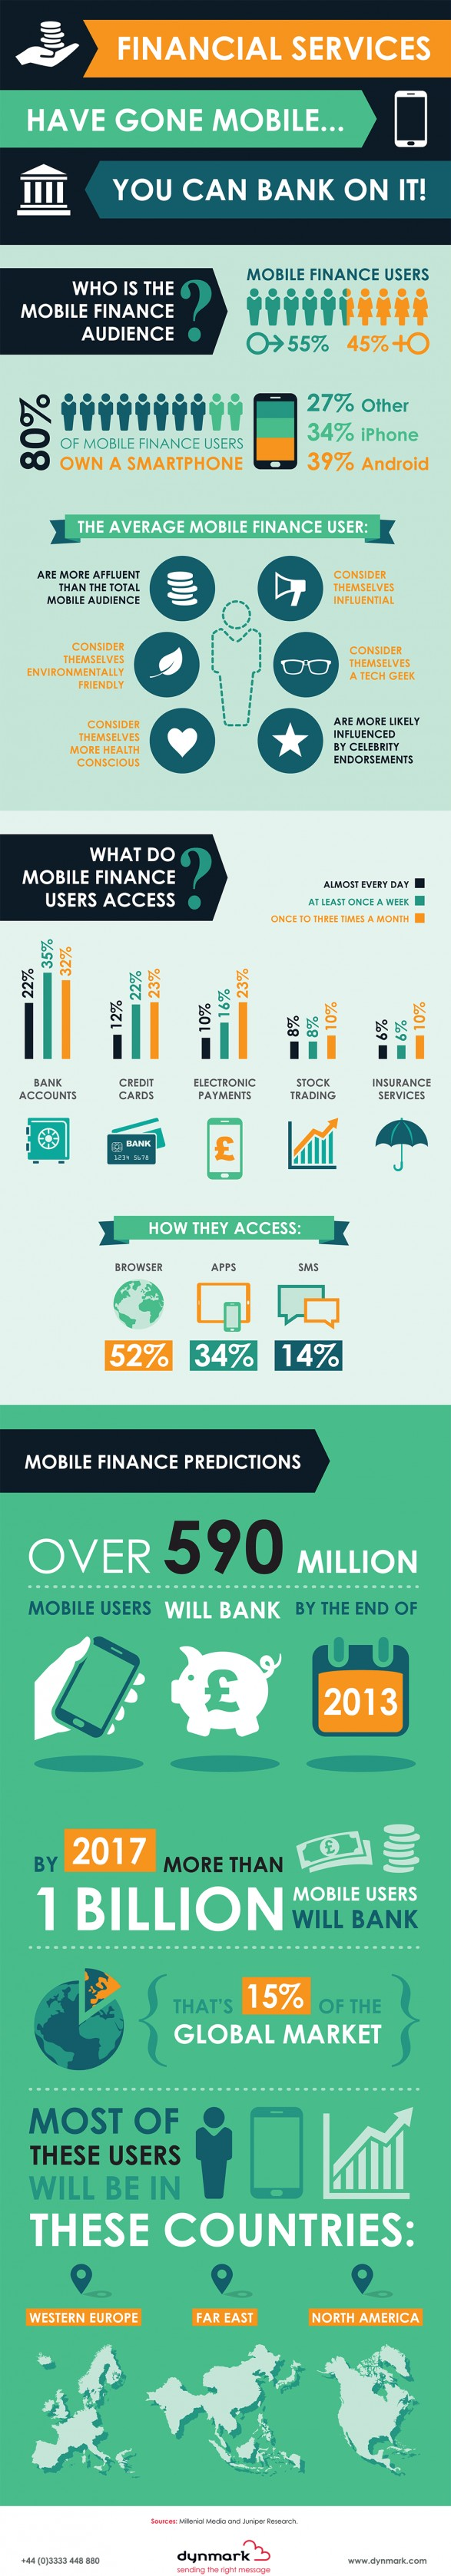 Financial Services Trends and Statistics